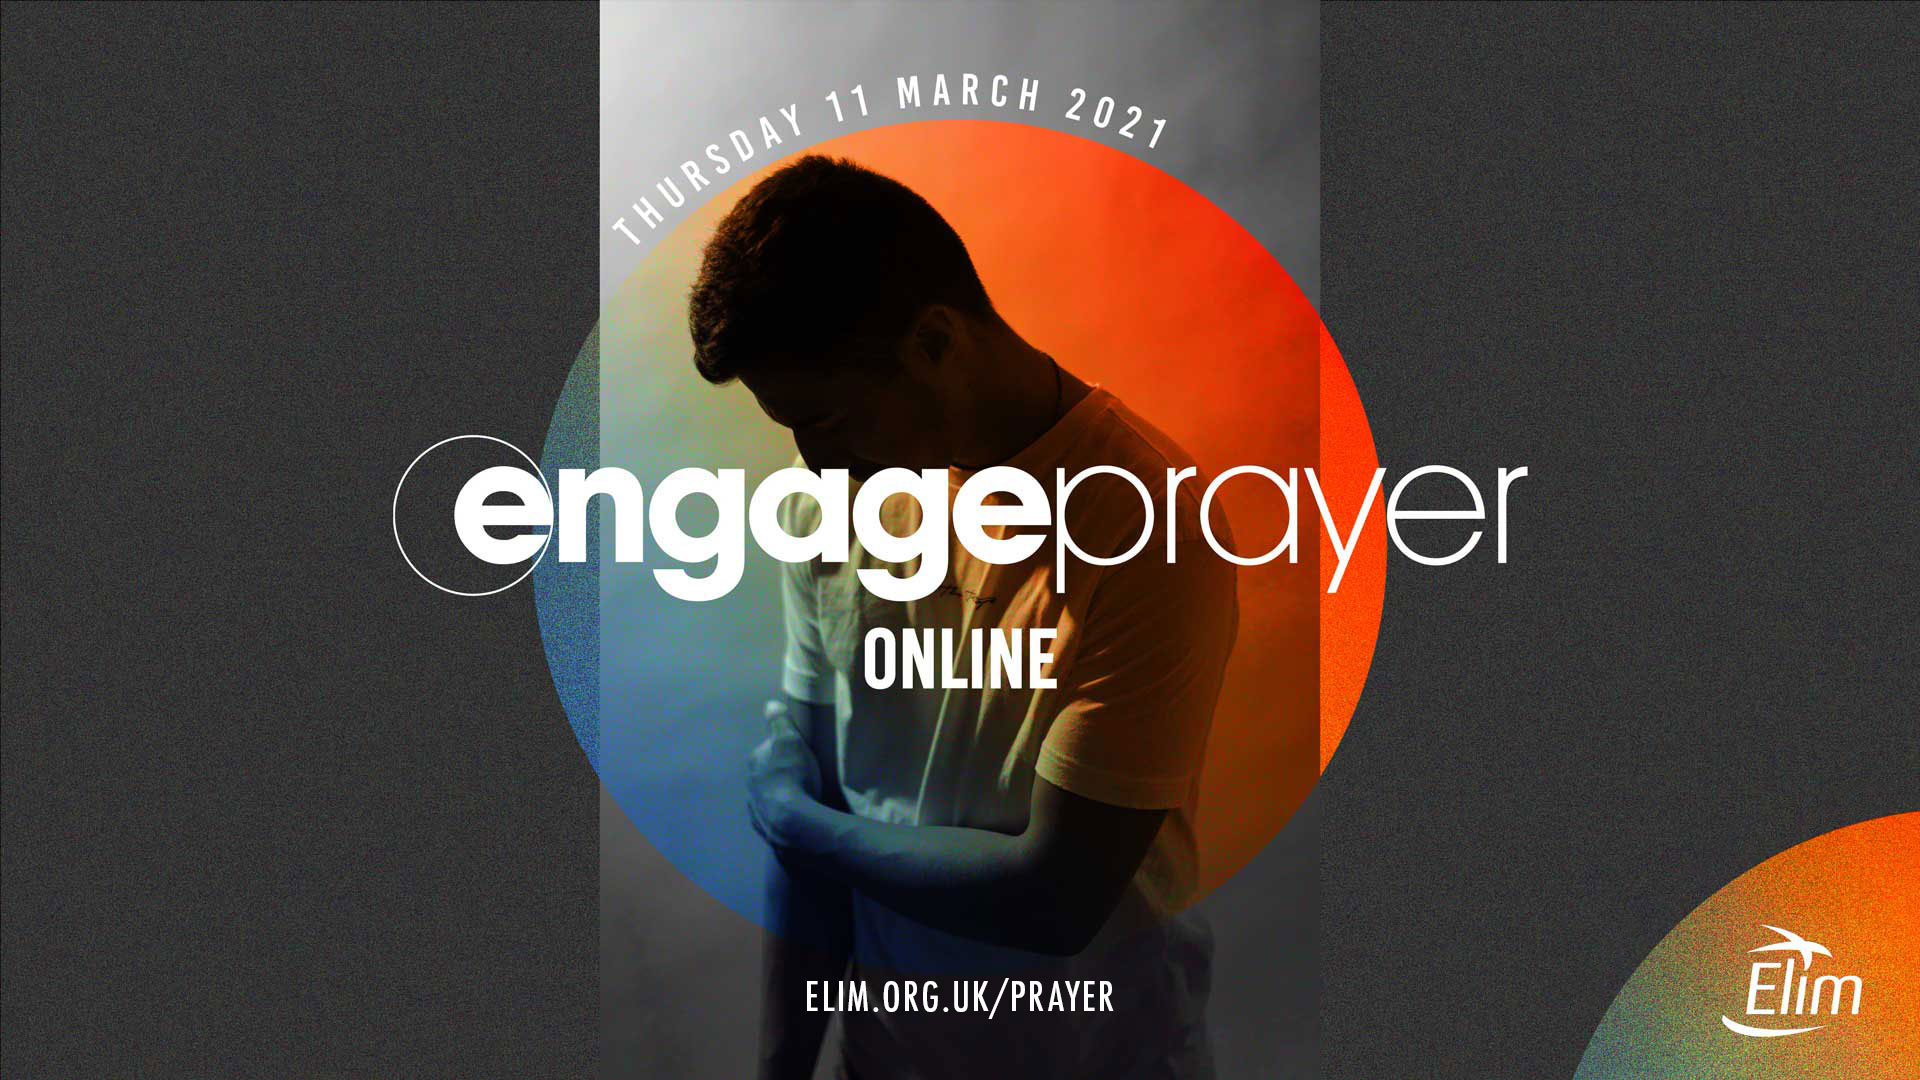 ENGAGE-PRAYER-MARCH-2021-MAIN-